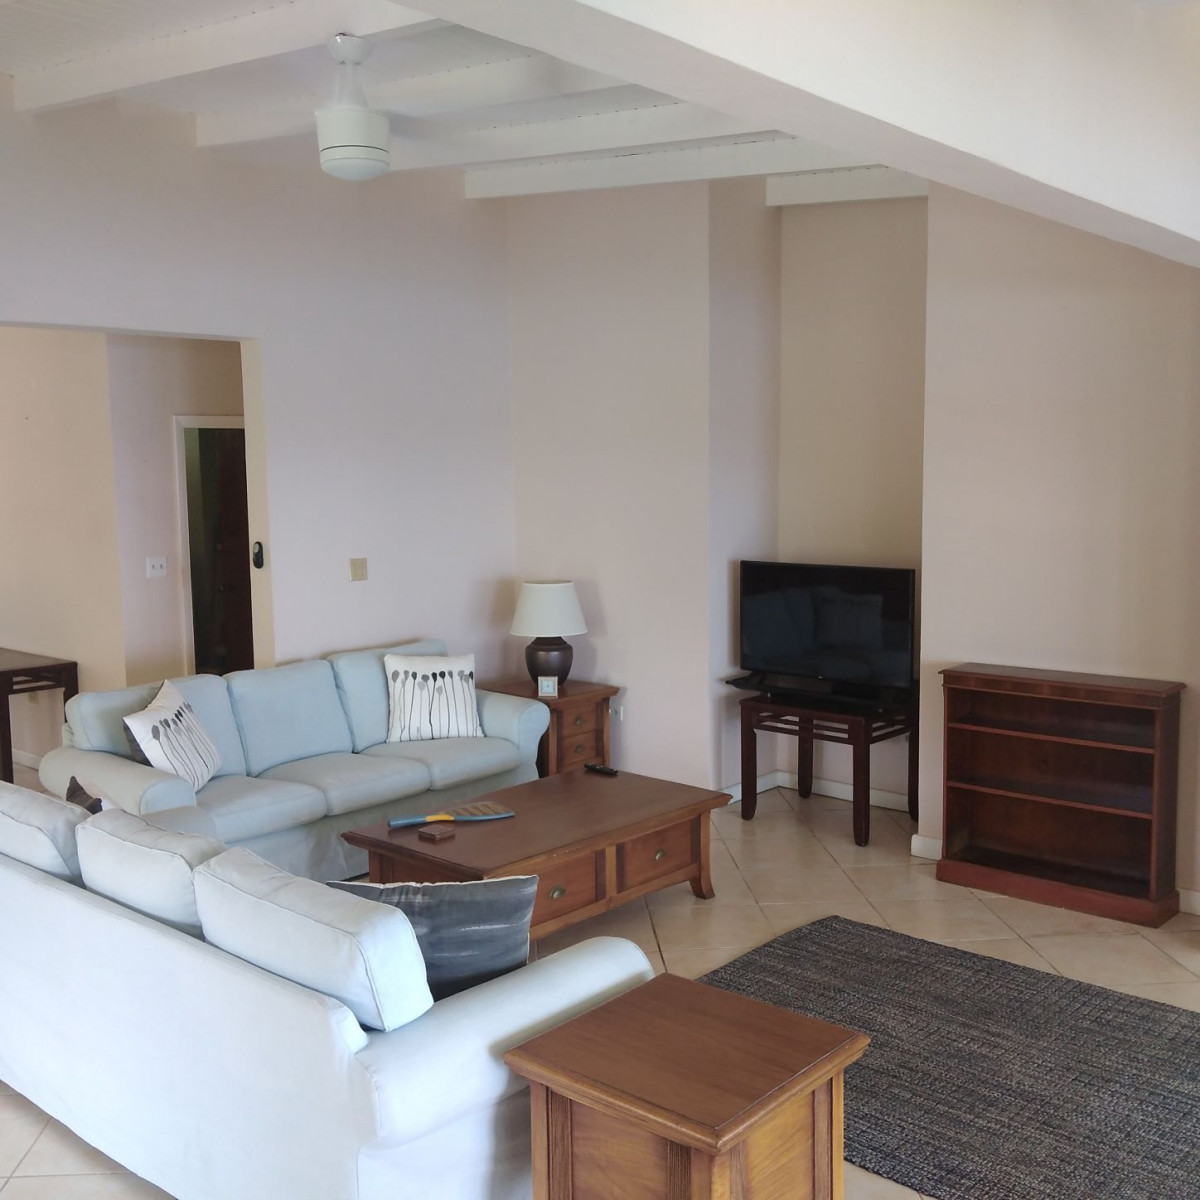 BVI Property 3 Bedroom – Fahie Hill featured image